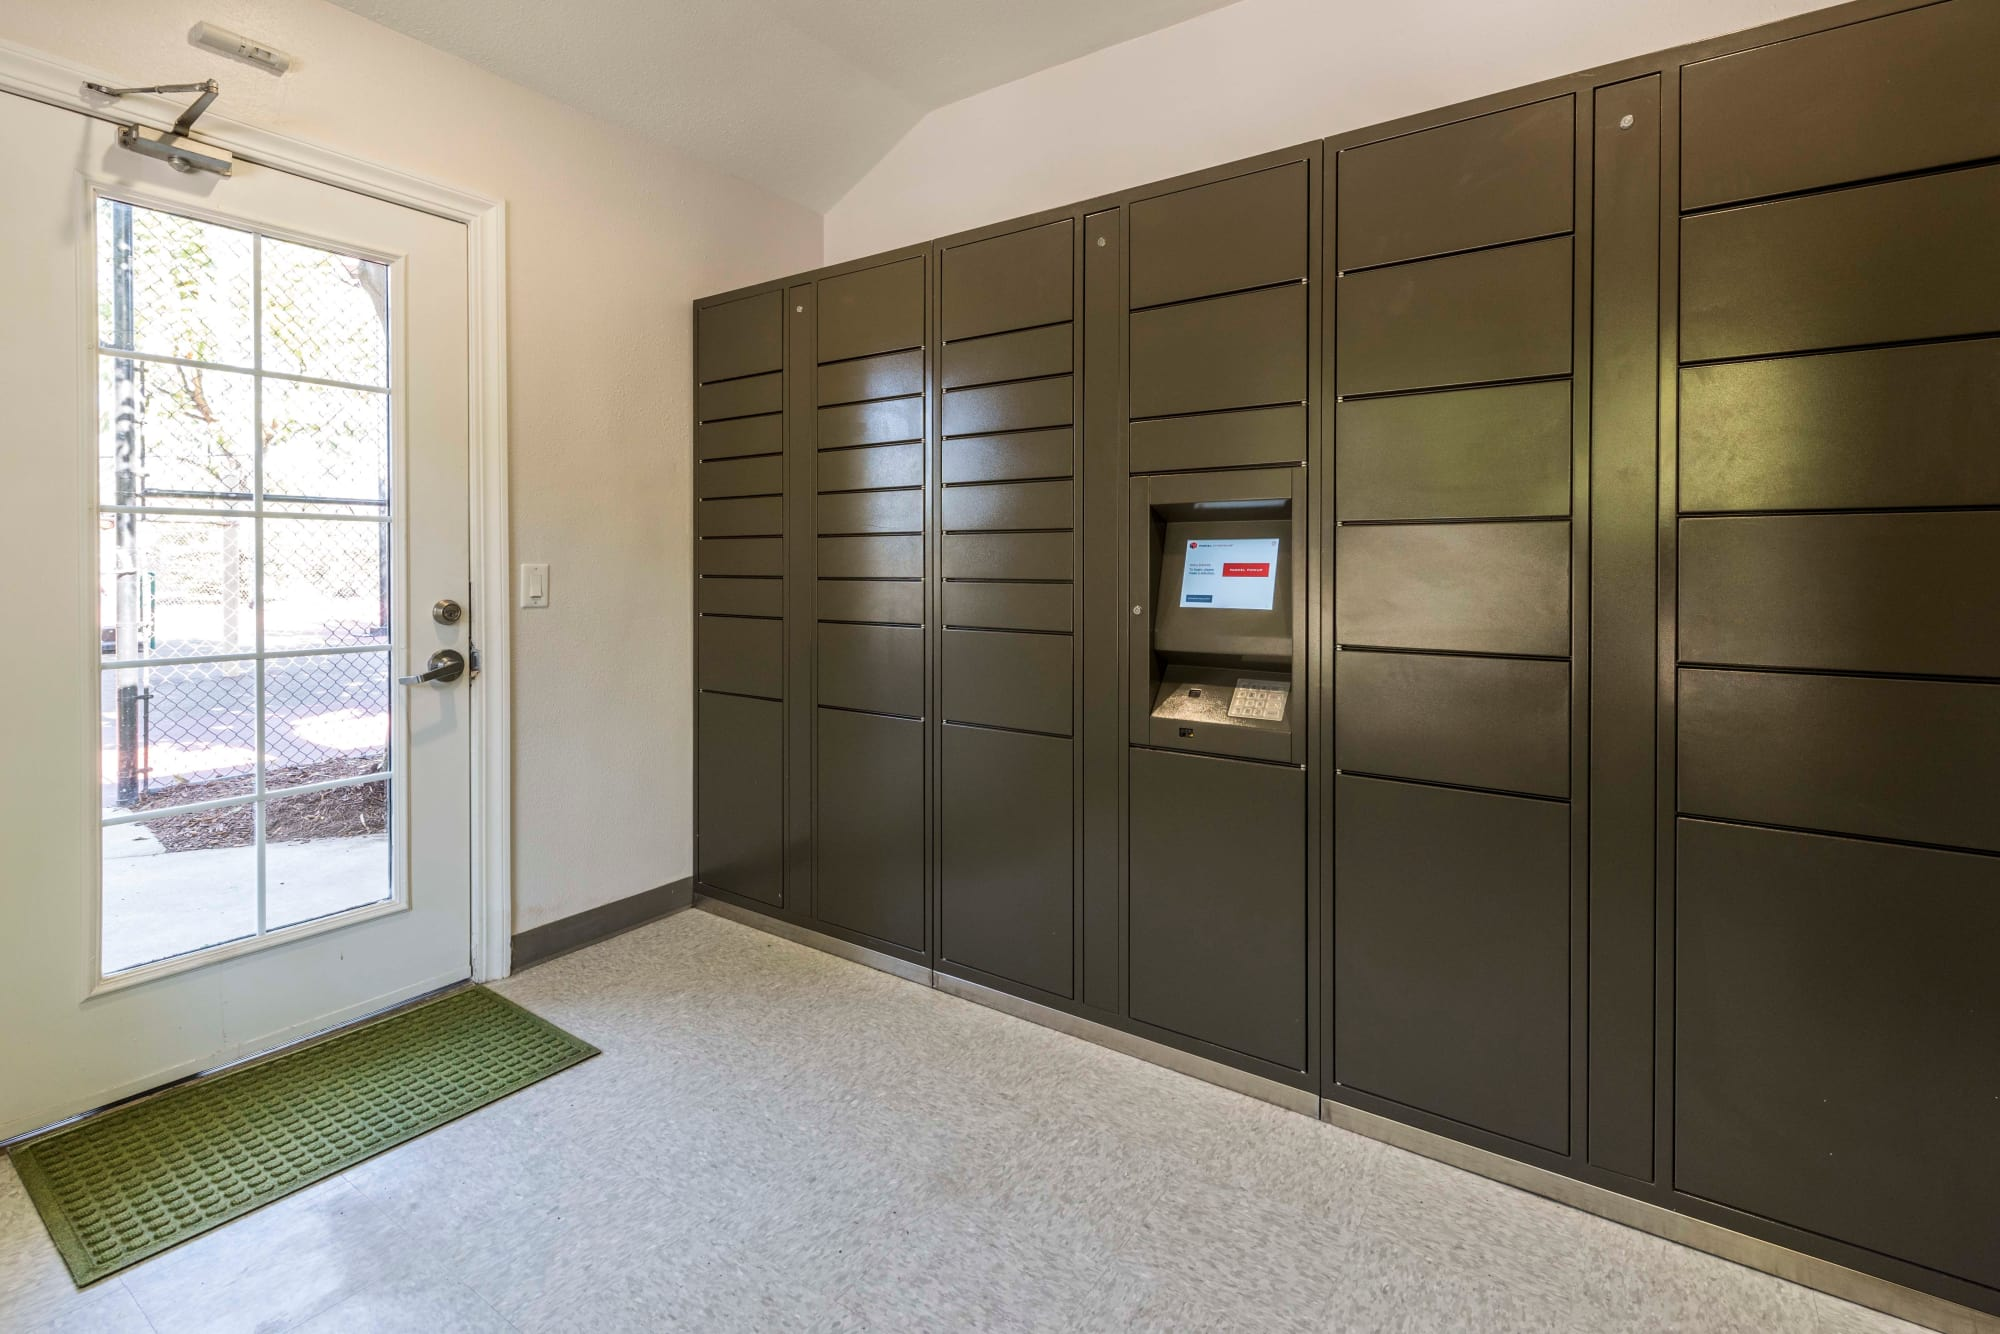 24-hour package lockers at Village Oaks in Chino Hills, California